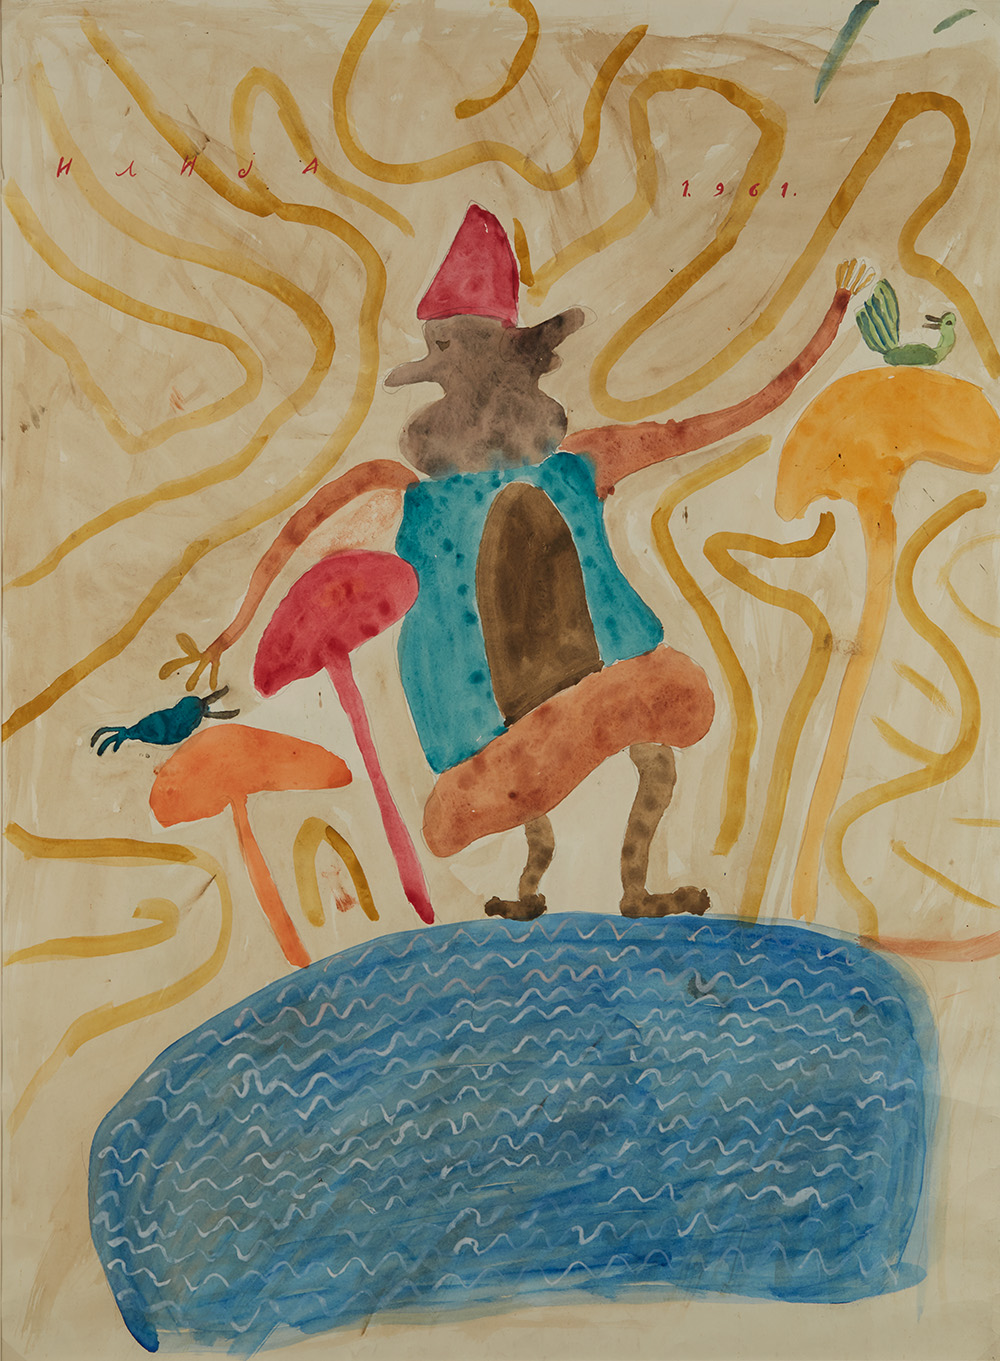 Ilija Bosilj Bašičević    Two Faced Man Walking On Water  , 1961 Gouache on paper 30.75 x 22.5 inches 78.1 x 57.2 cm IBo 3